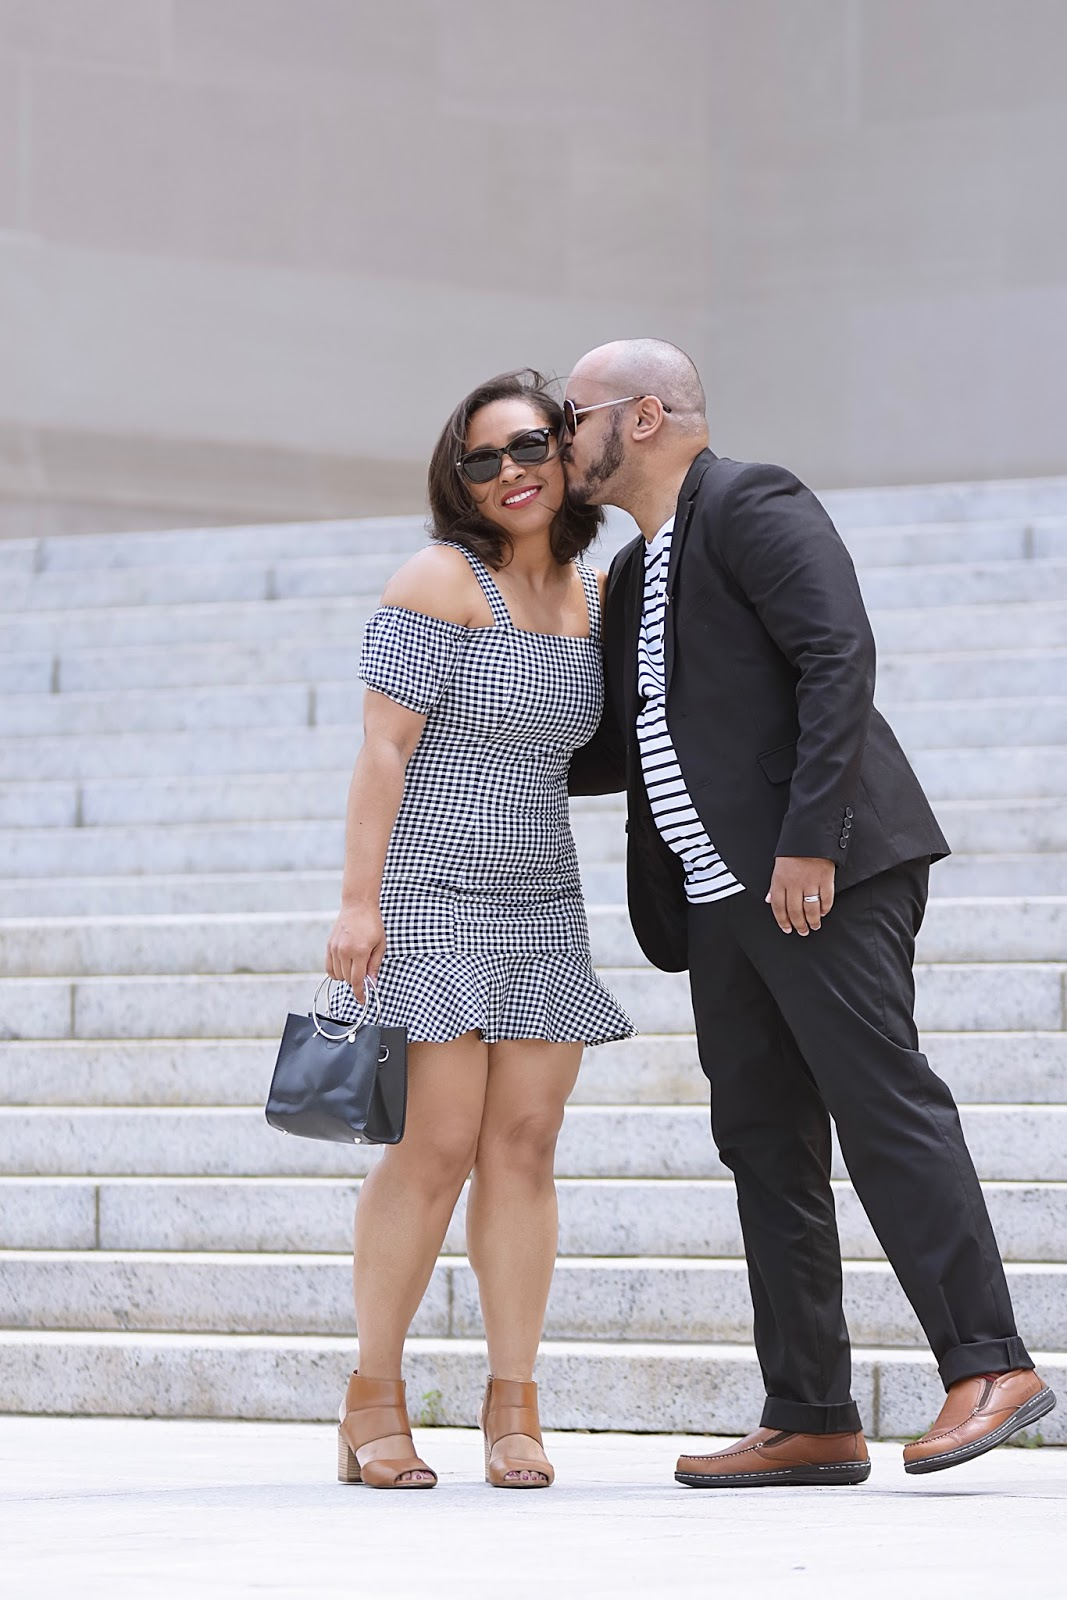 Better in Pairs | Healthy Marriage Tips From A His & Her Perspective, hush puppies shoes, gingham print, marriage advie, his and hers, couples photoshoot, marriage advice, husband and wife, couples outfit idea, summer looks